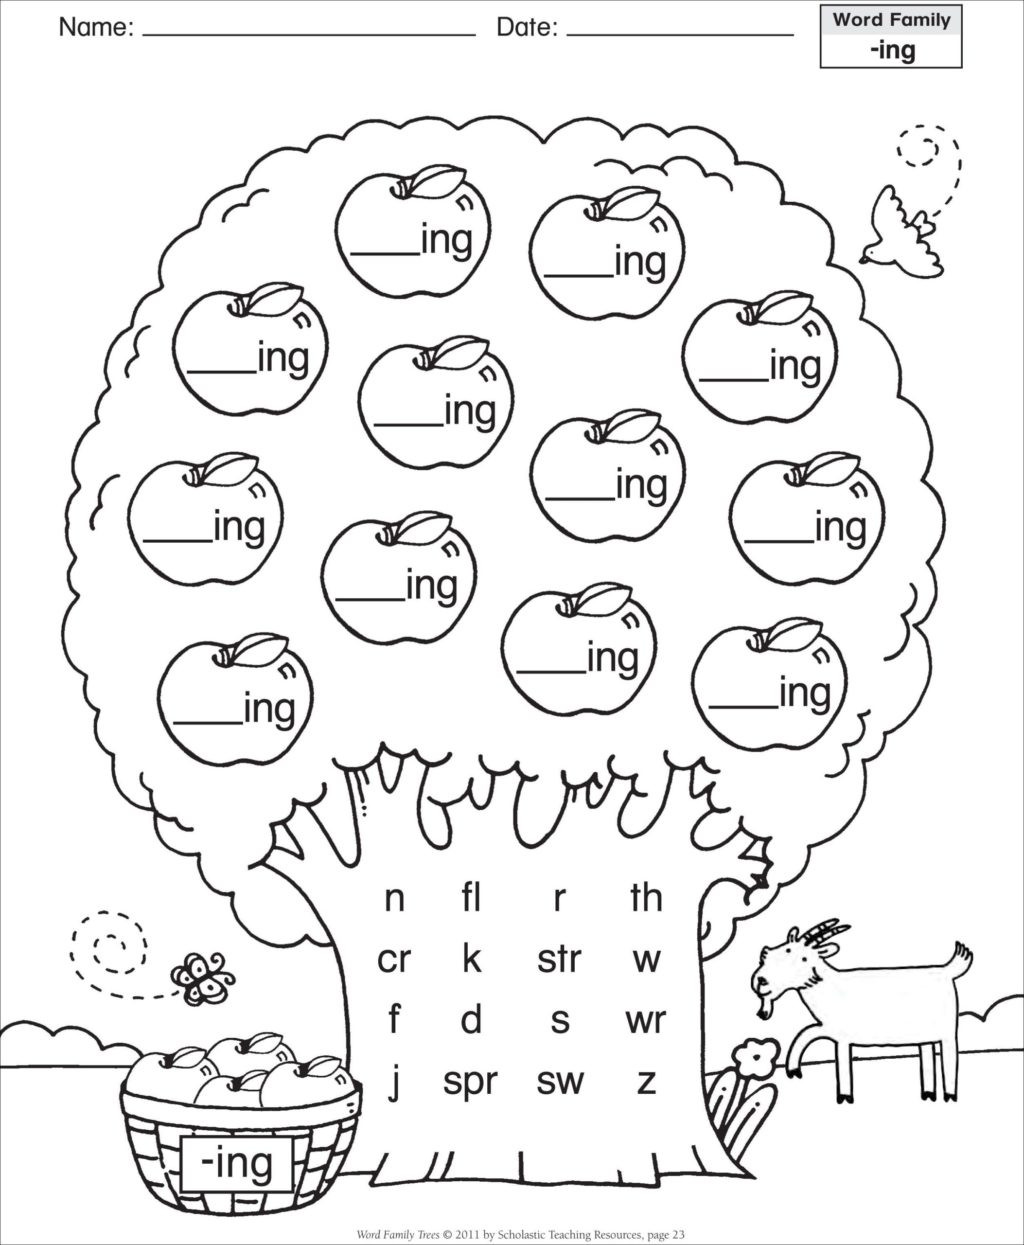 Adjective Worksheets 1st Grade Worksheet Kindergarten Worksheets Fun Printable Kid